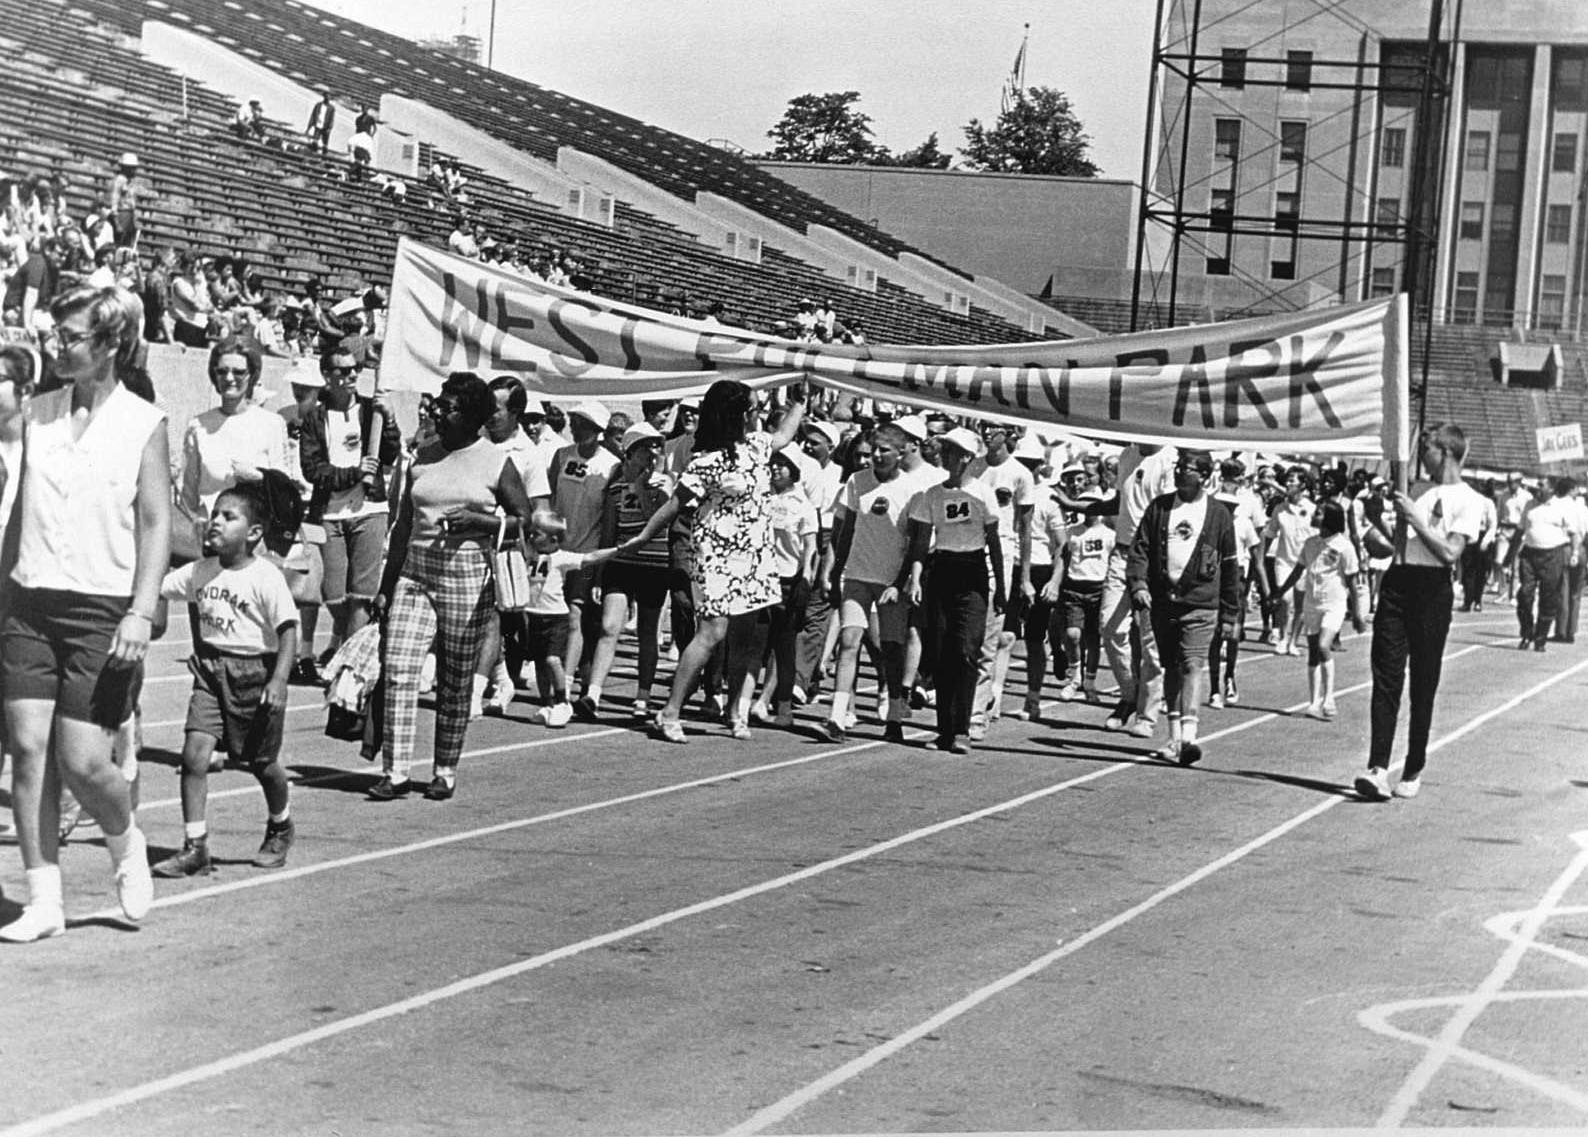 The 1968 games included track and field, swimming and diving, and a variety of other sports, setting the stage for the Special Olympics World Games to come in later years.